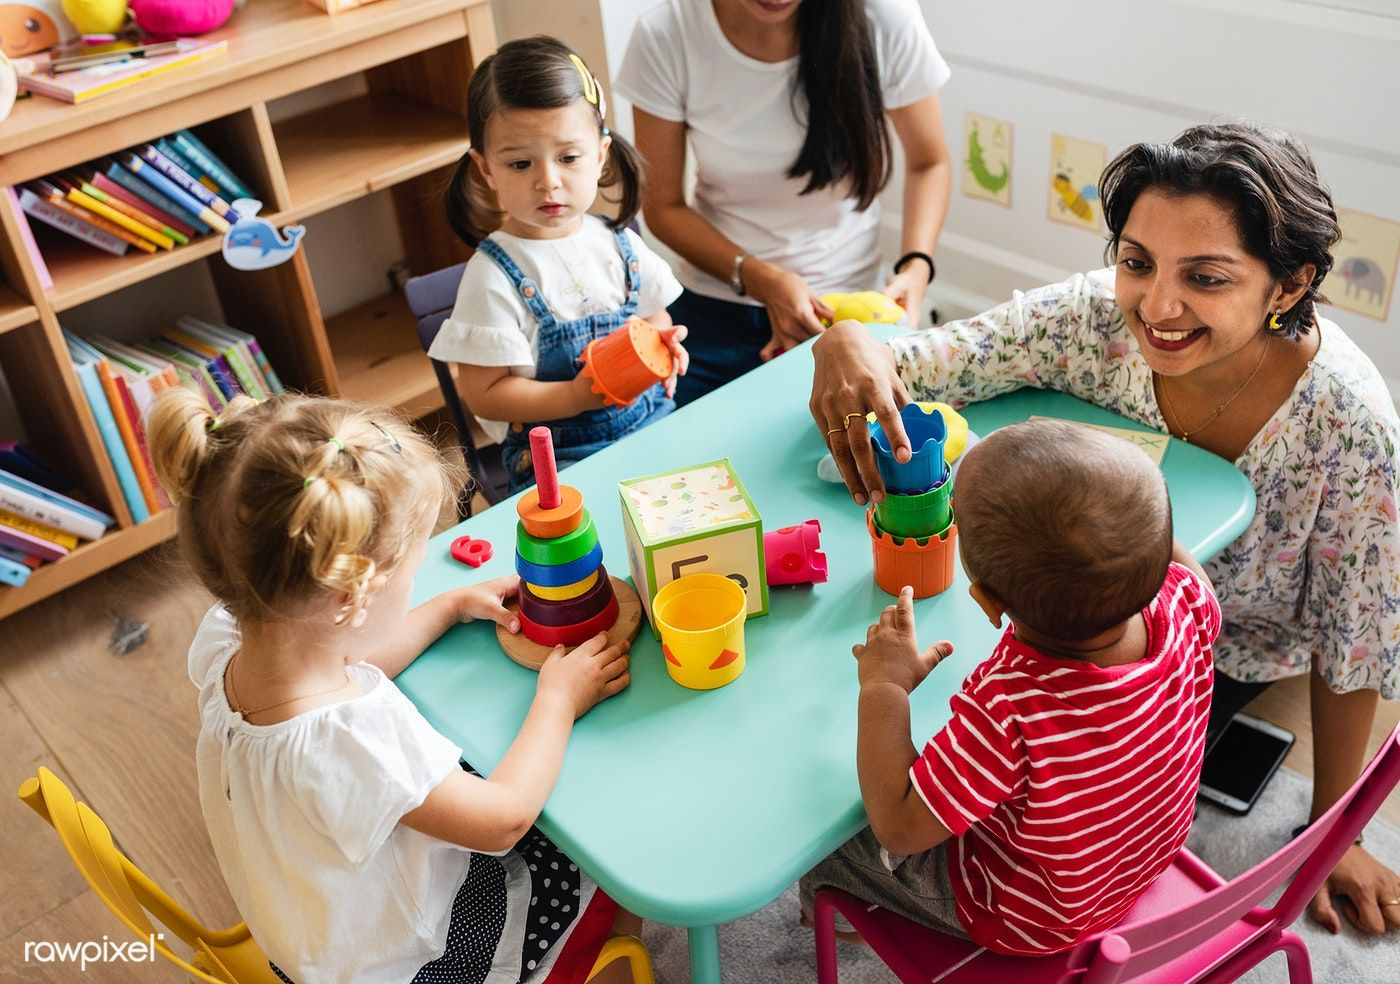 Download Premium Image Of Nursery Children Playing With Teacher In The